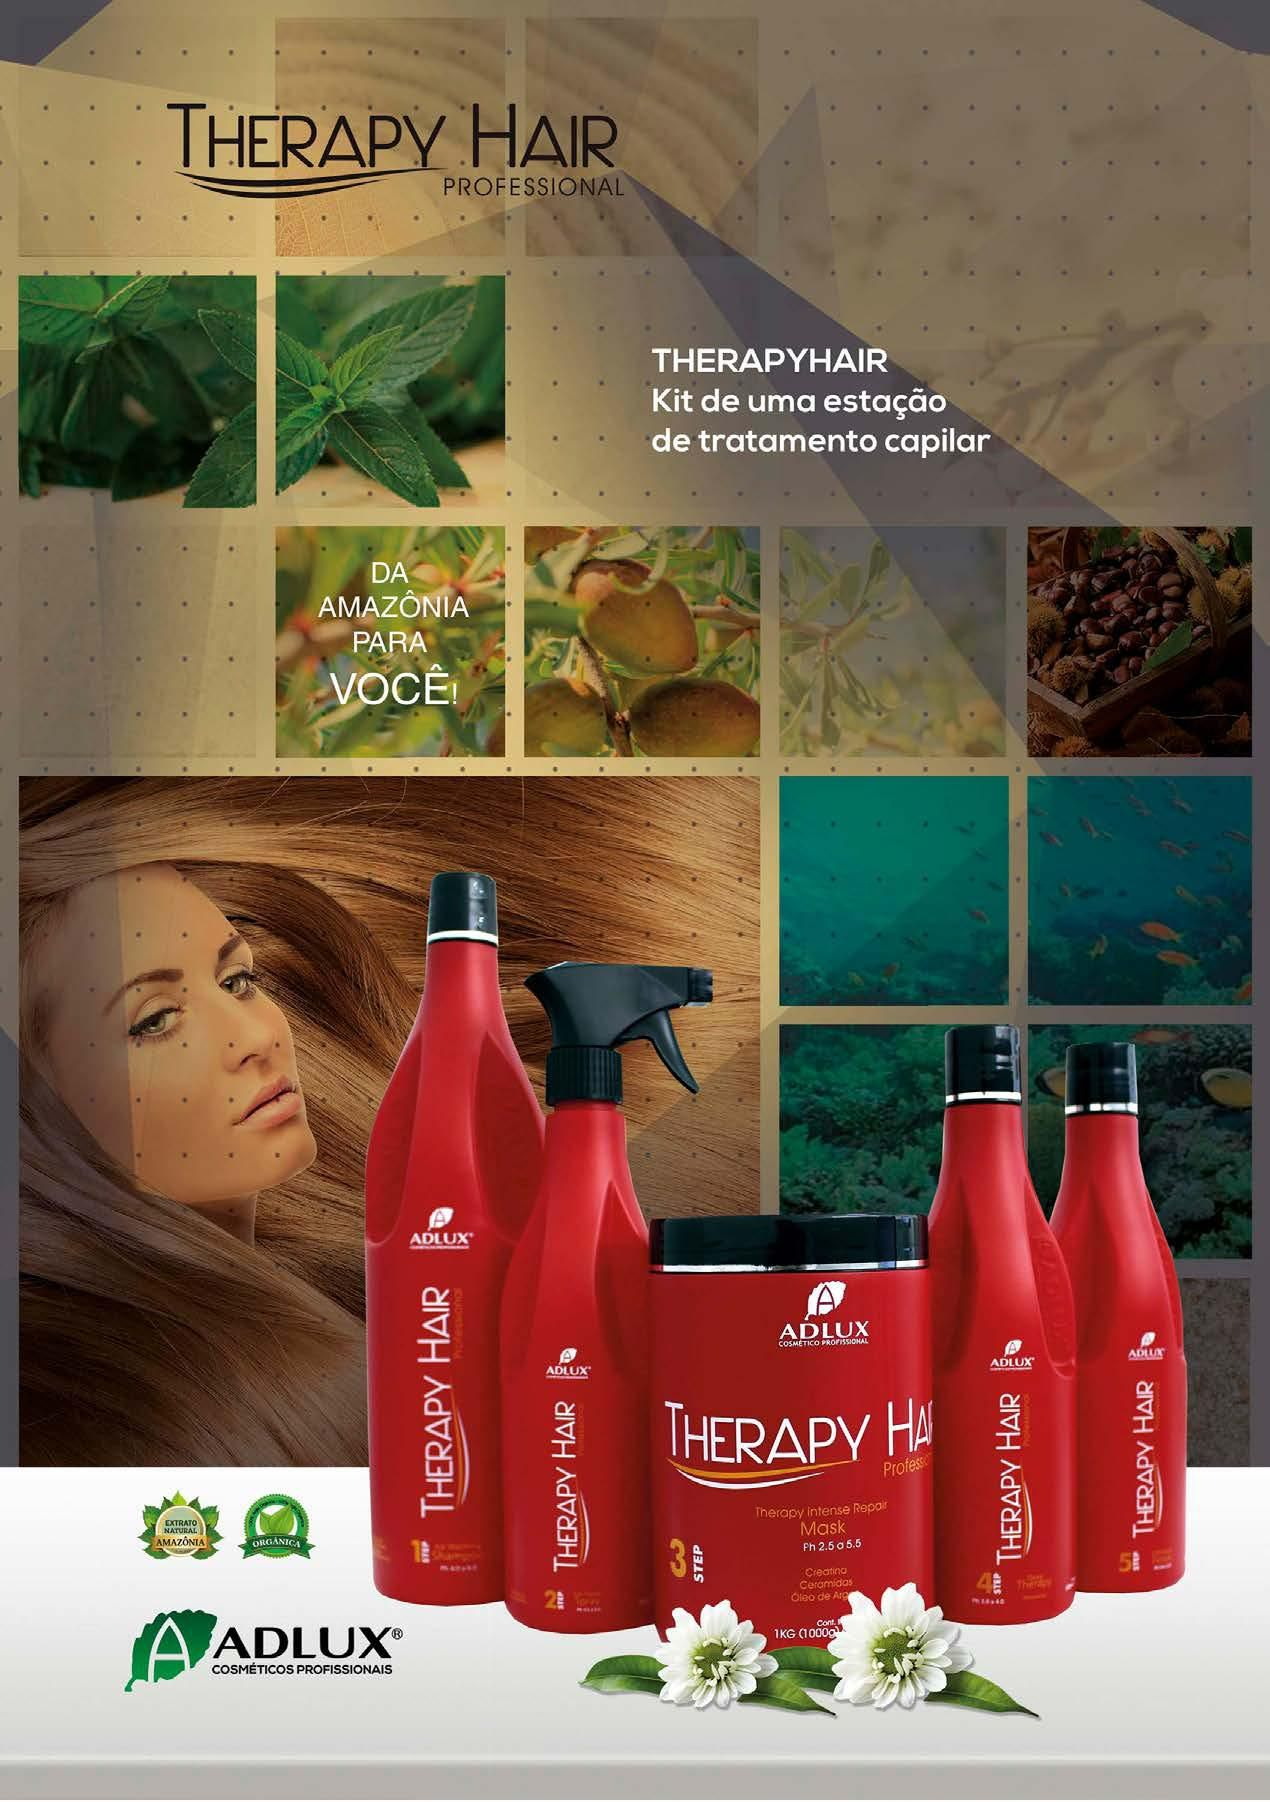 a637013ed6 produtos adlux linha profissional kit therapy hair